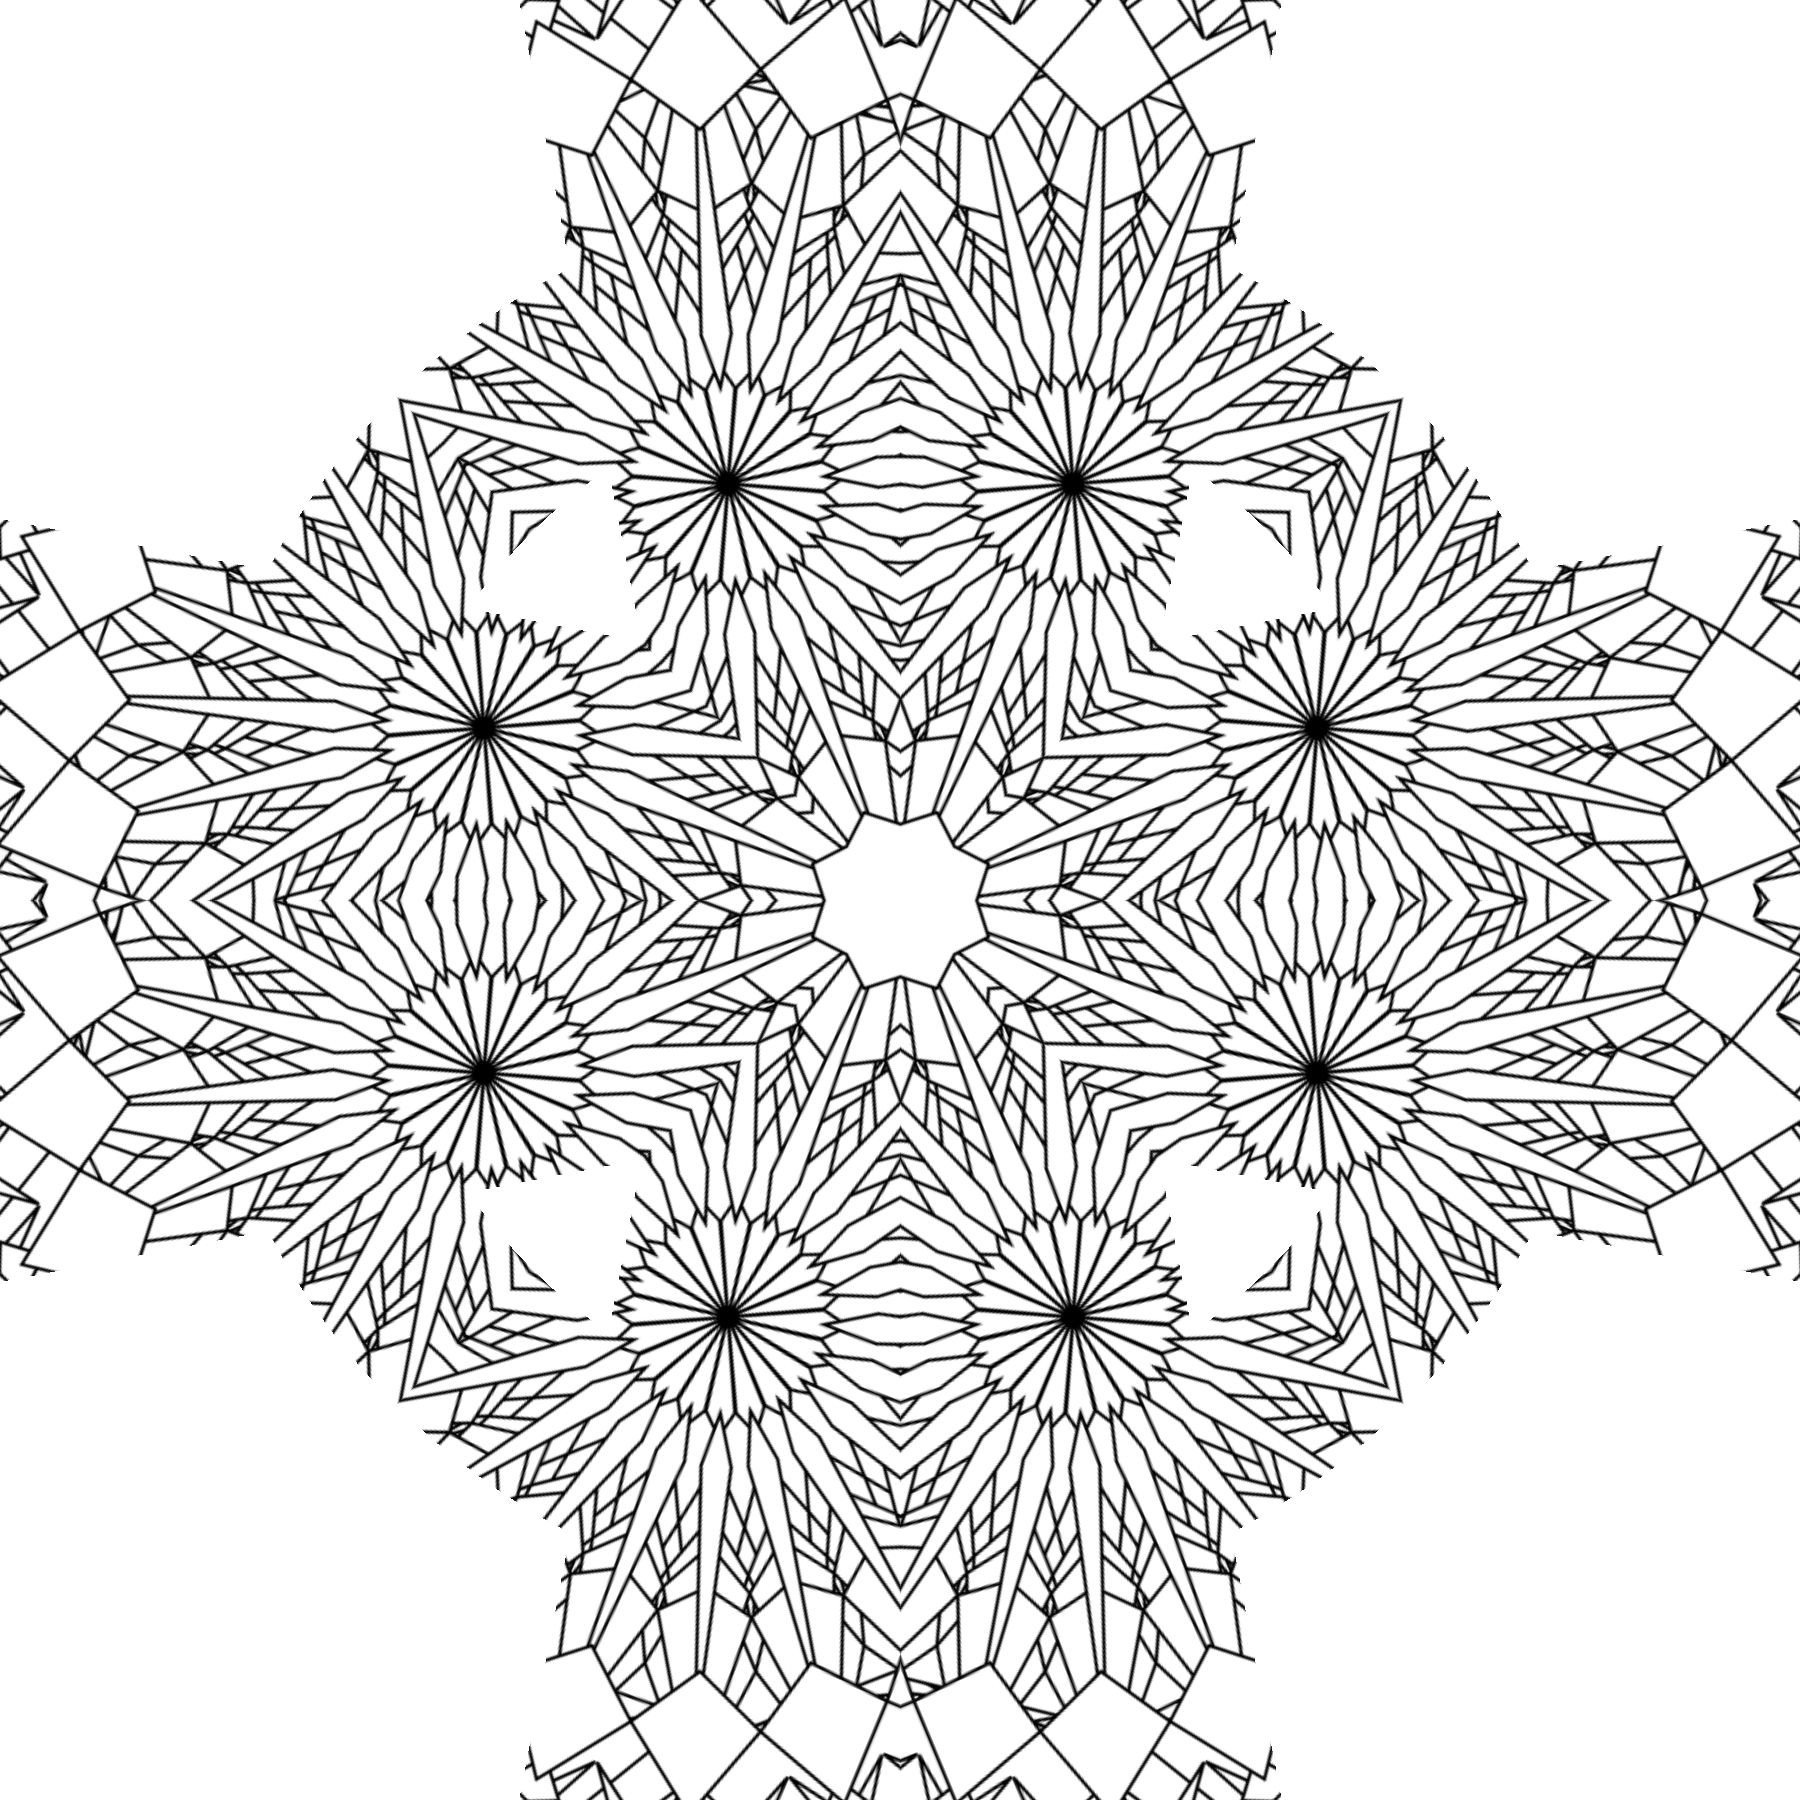 Coloring Patterns For Kids  Free Printable Abstract Coloring Pages for Adults